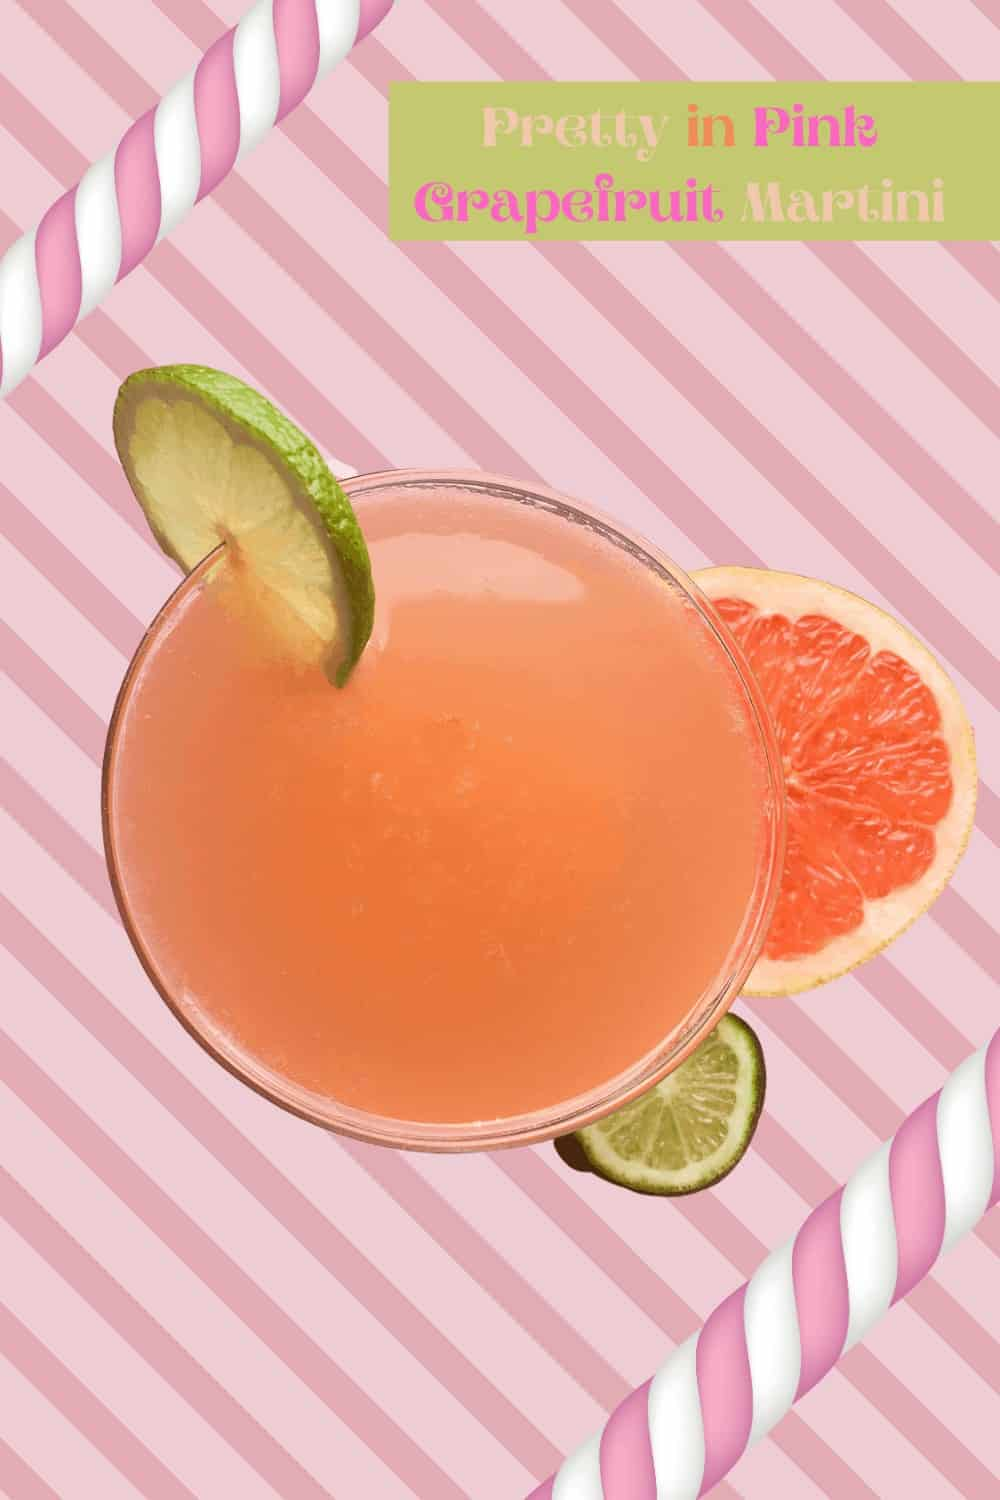 Grapefruit Martini with pink stripes behind